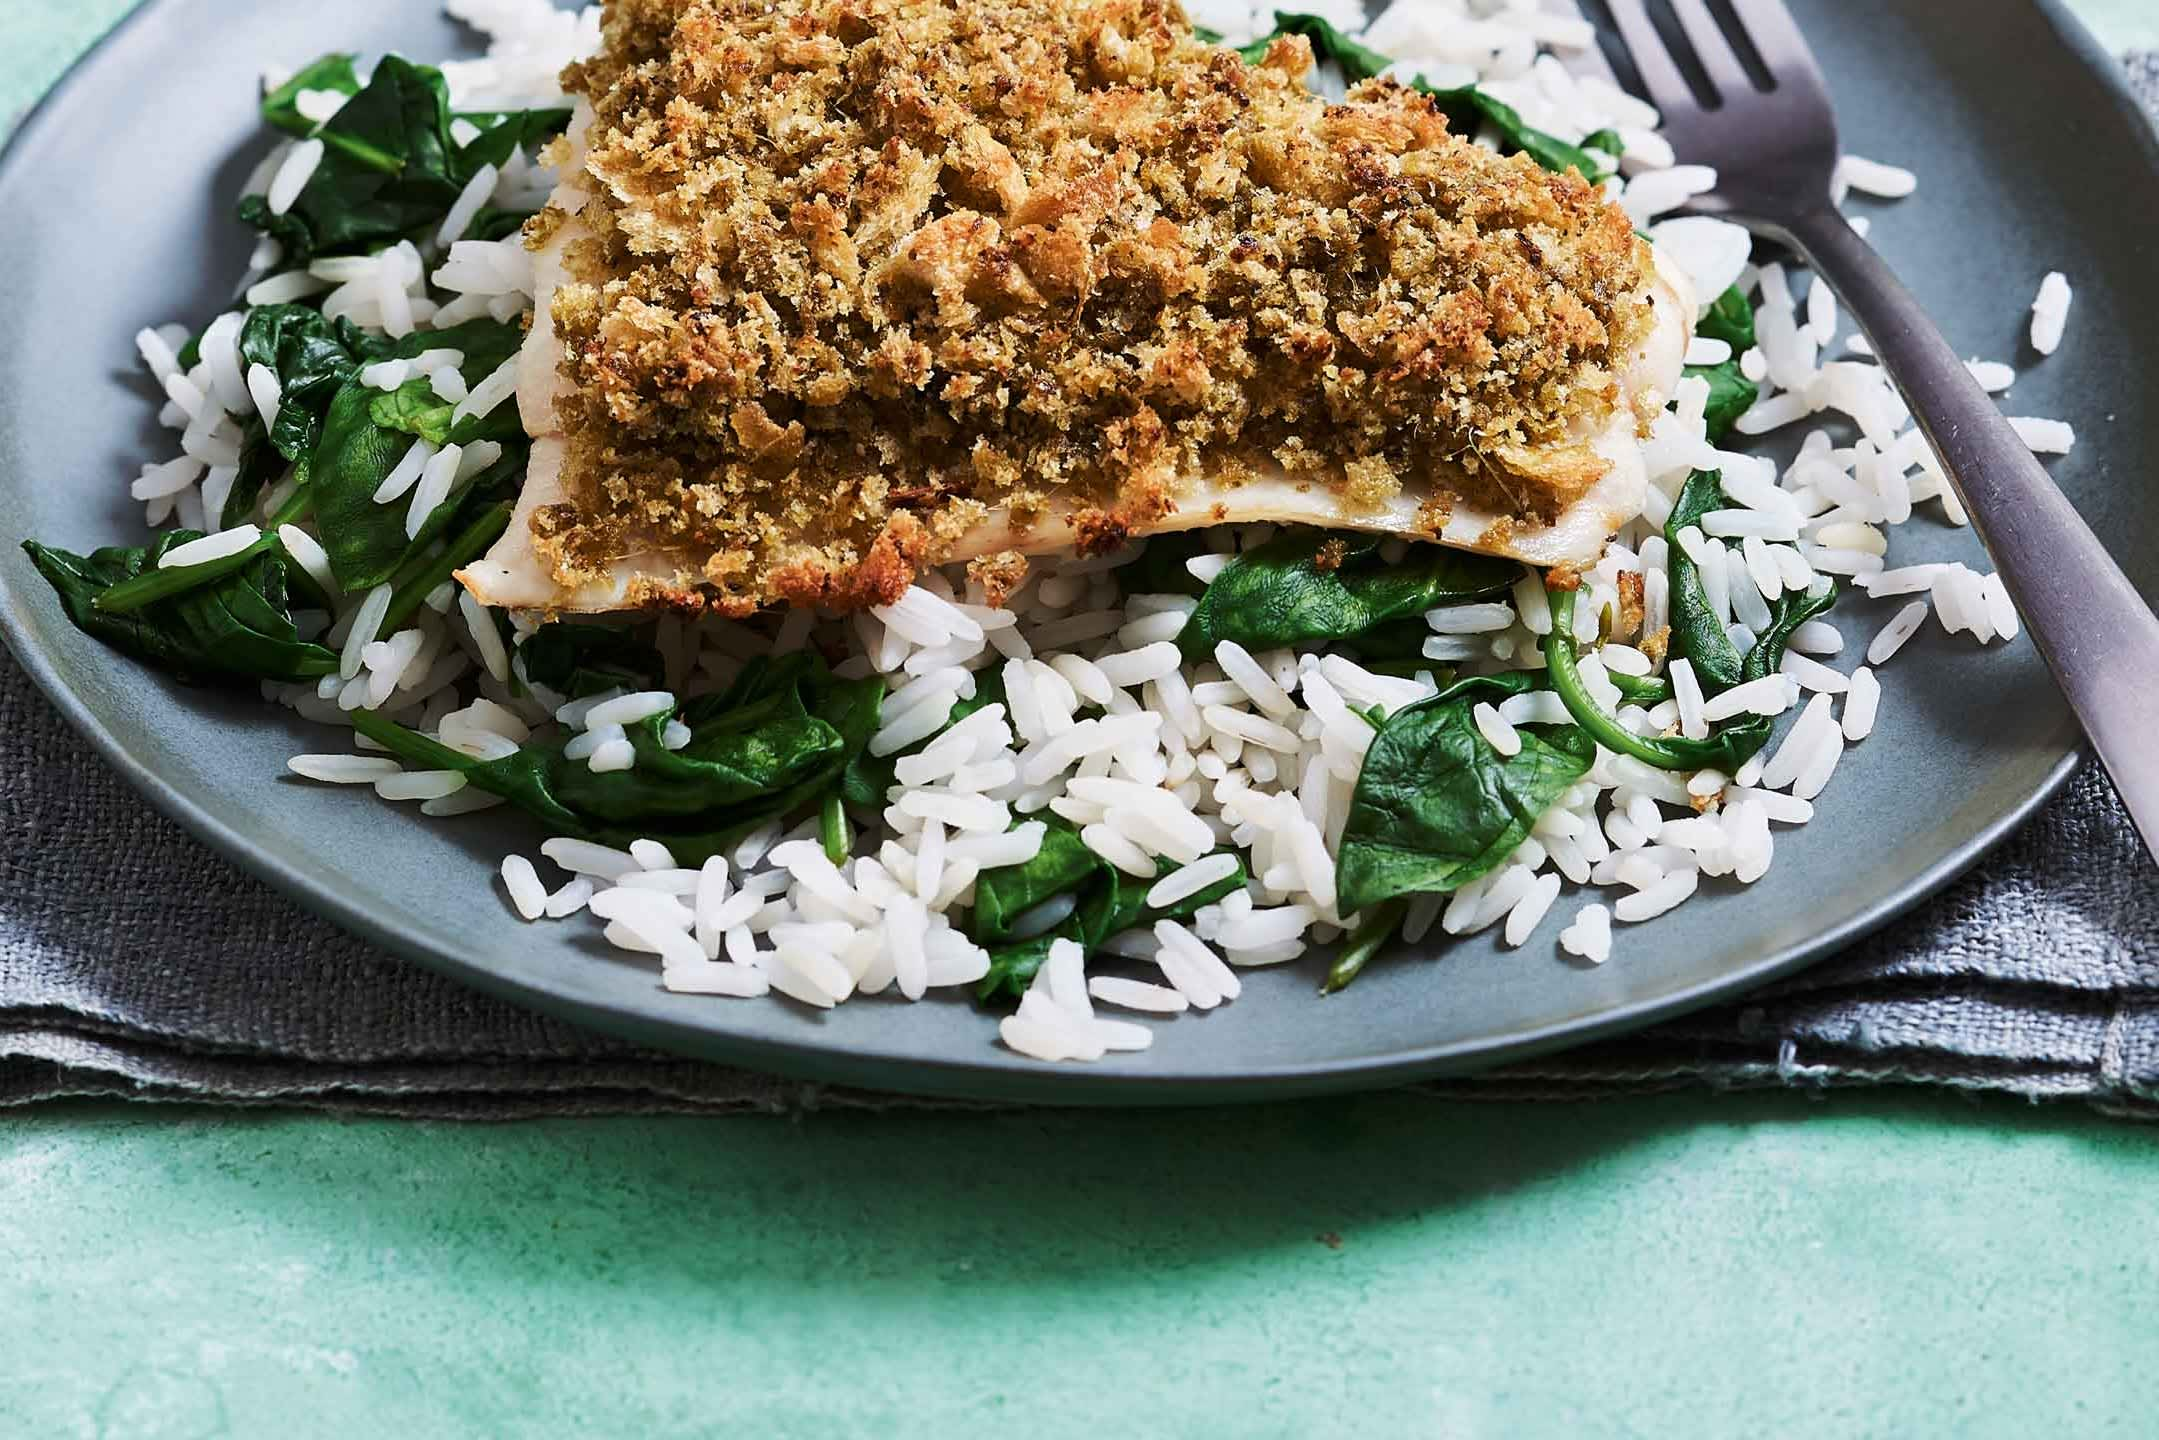 pesto-crumbed-fish-with-spinach-rice